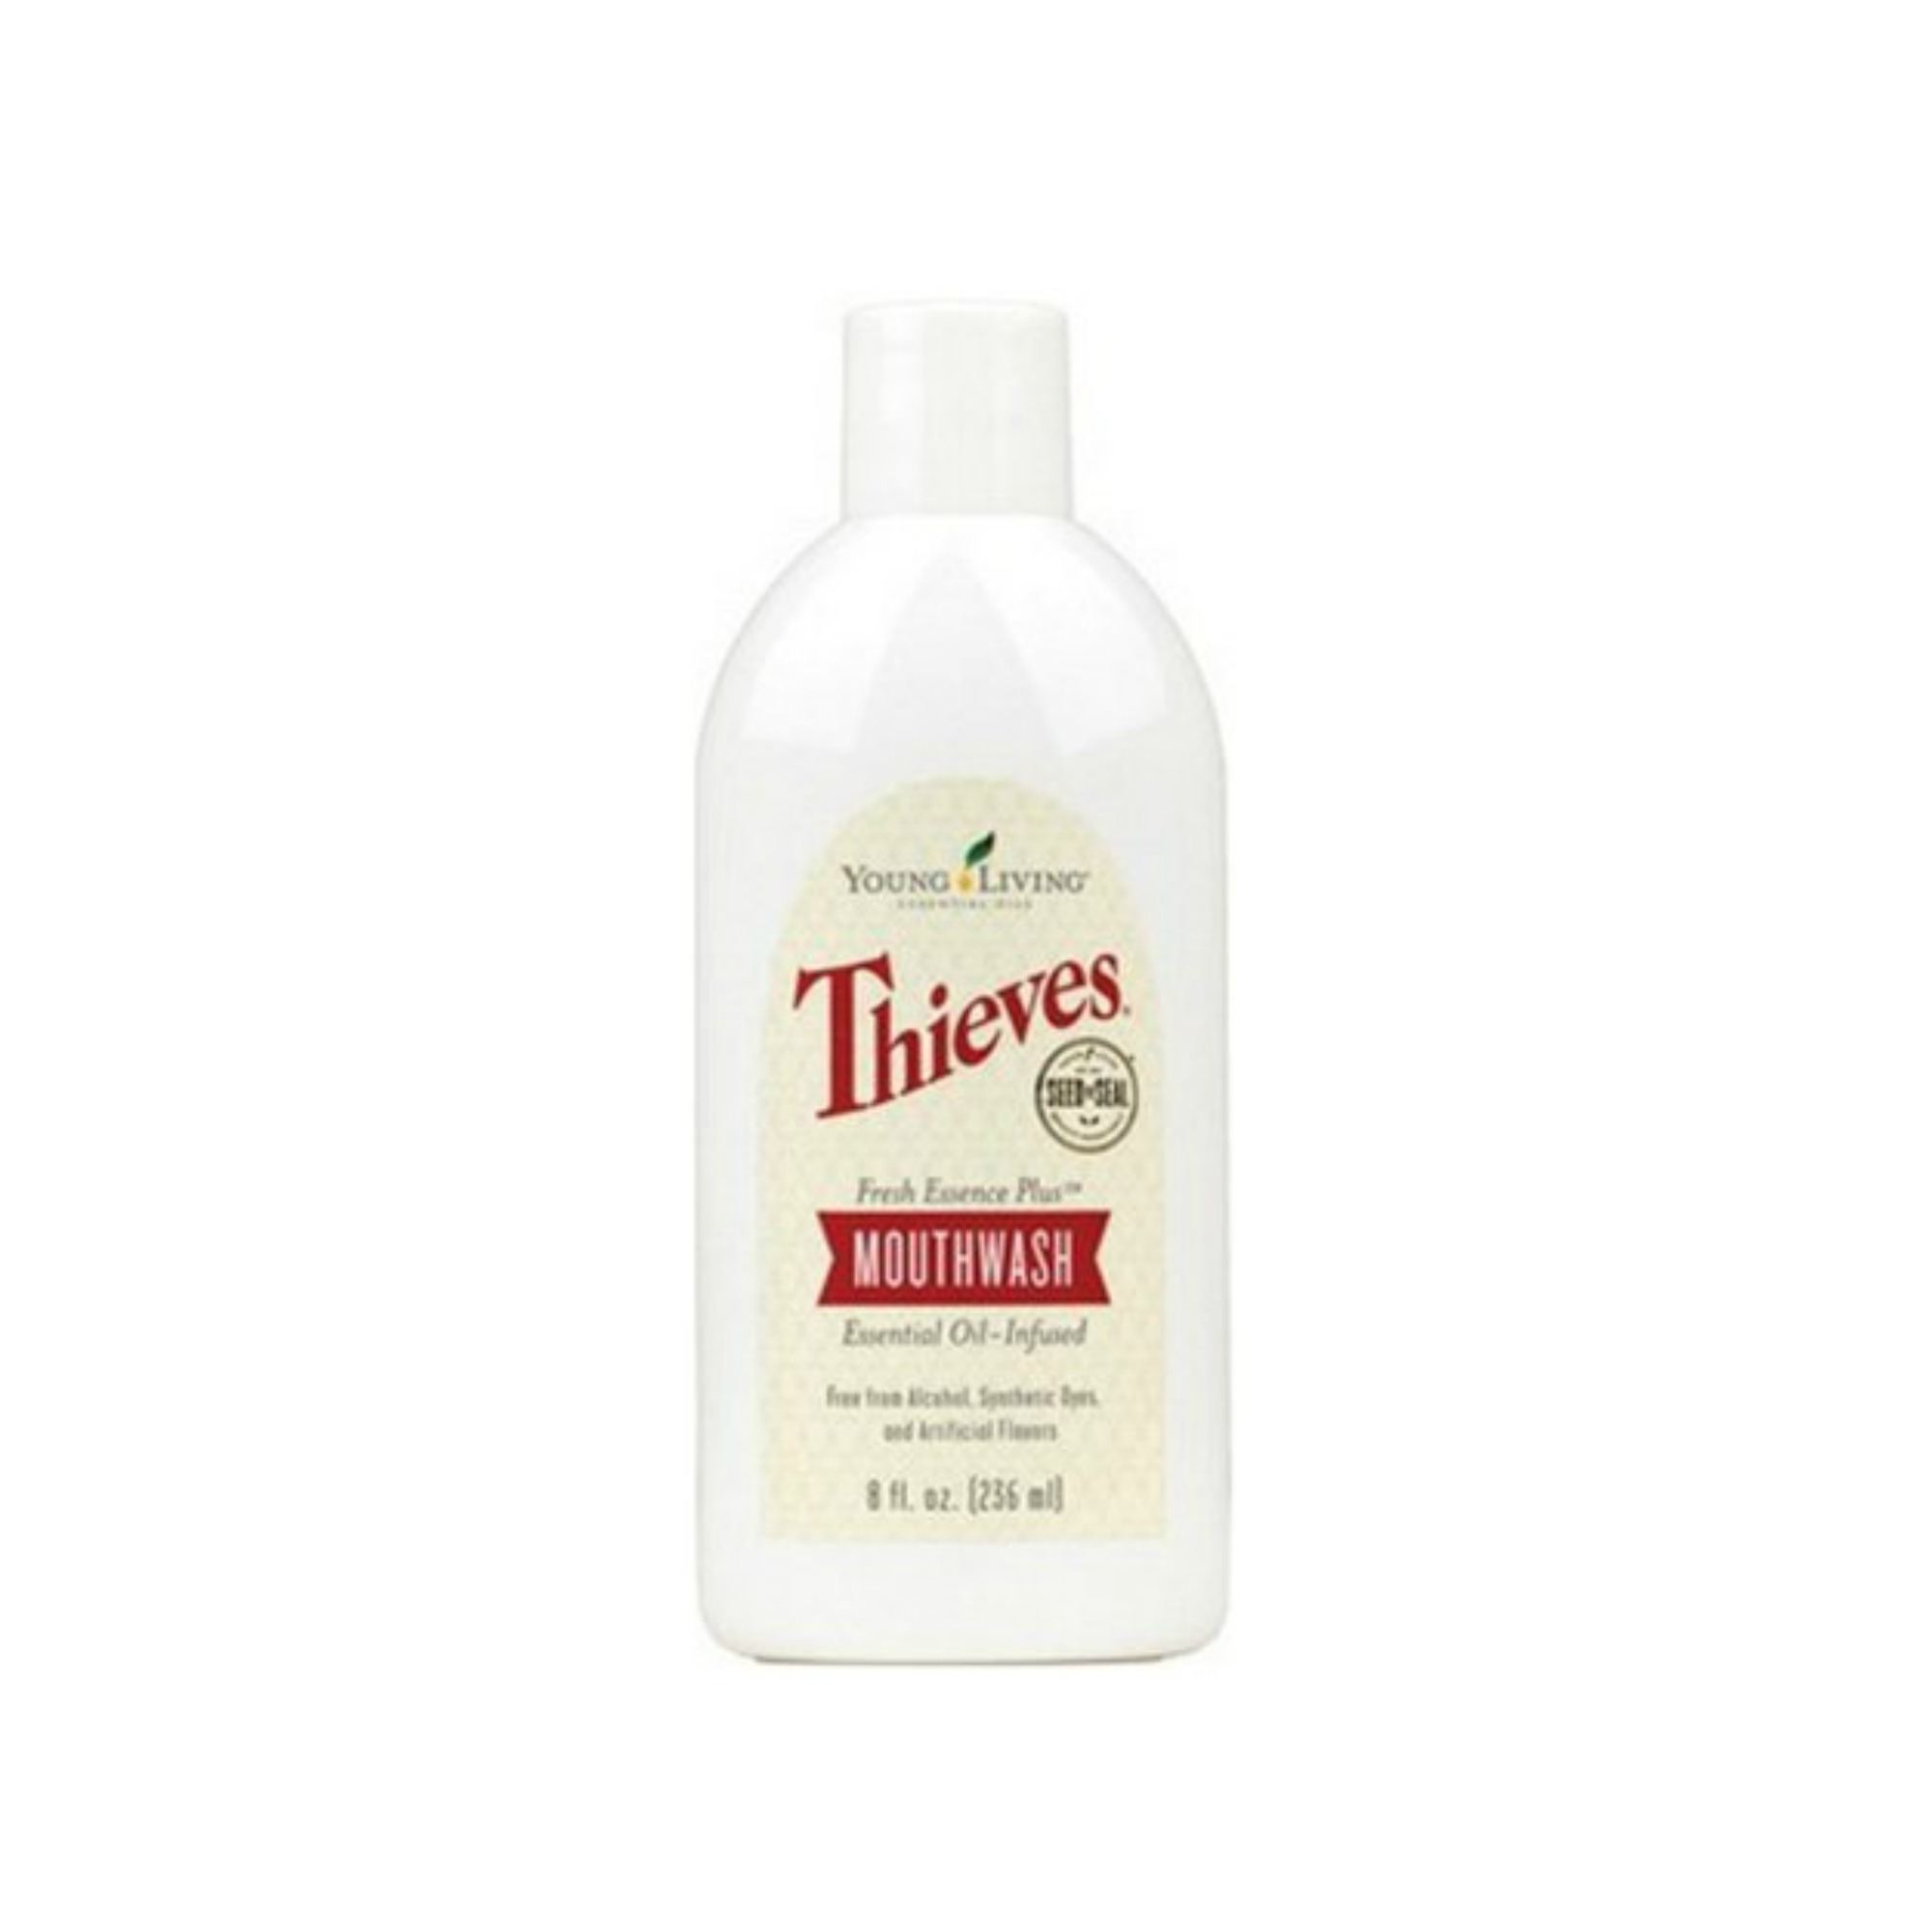 THIEVES MOUTHWASH    Thieves Fresh Essence Plus Mouthwash freshens and provides a whole-mouth clean using the signature Thieves oil blend, a carefully crafted mix of Clove, Lemon, Cinnamon Bark, Eucalyptus, and Rosemary essential oils. Your teeth and gums will benefit from an invigorating clean that's free from harsh alcohol and artificial dyes and flavors.   Click here   to learn more about this product.